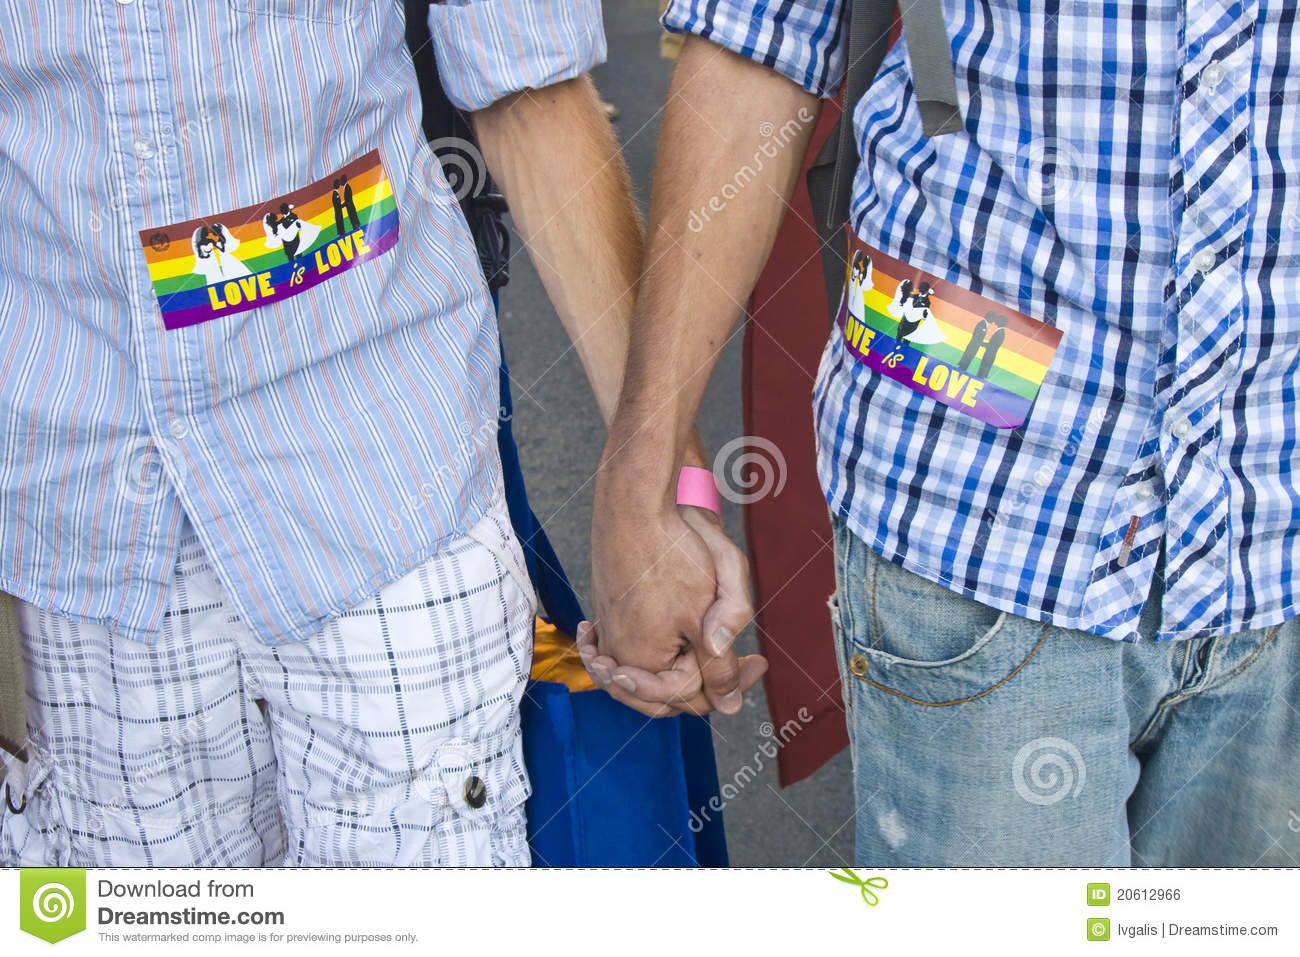 Gay men holding a pride flag